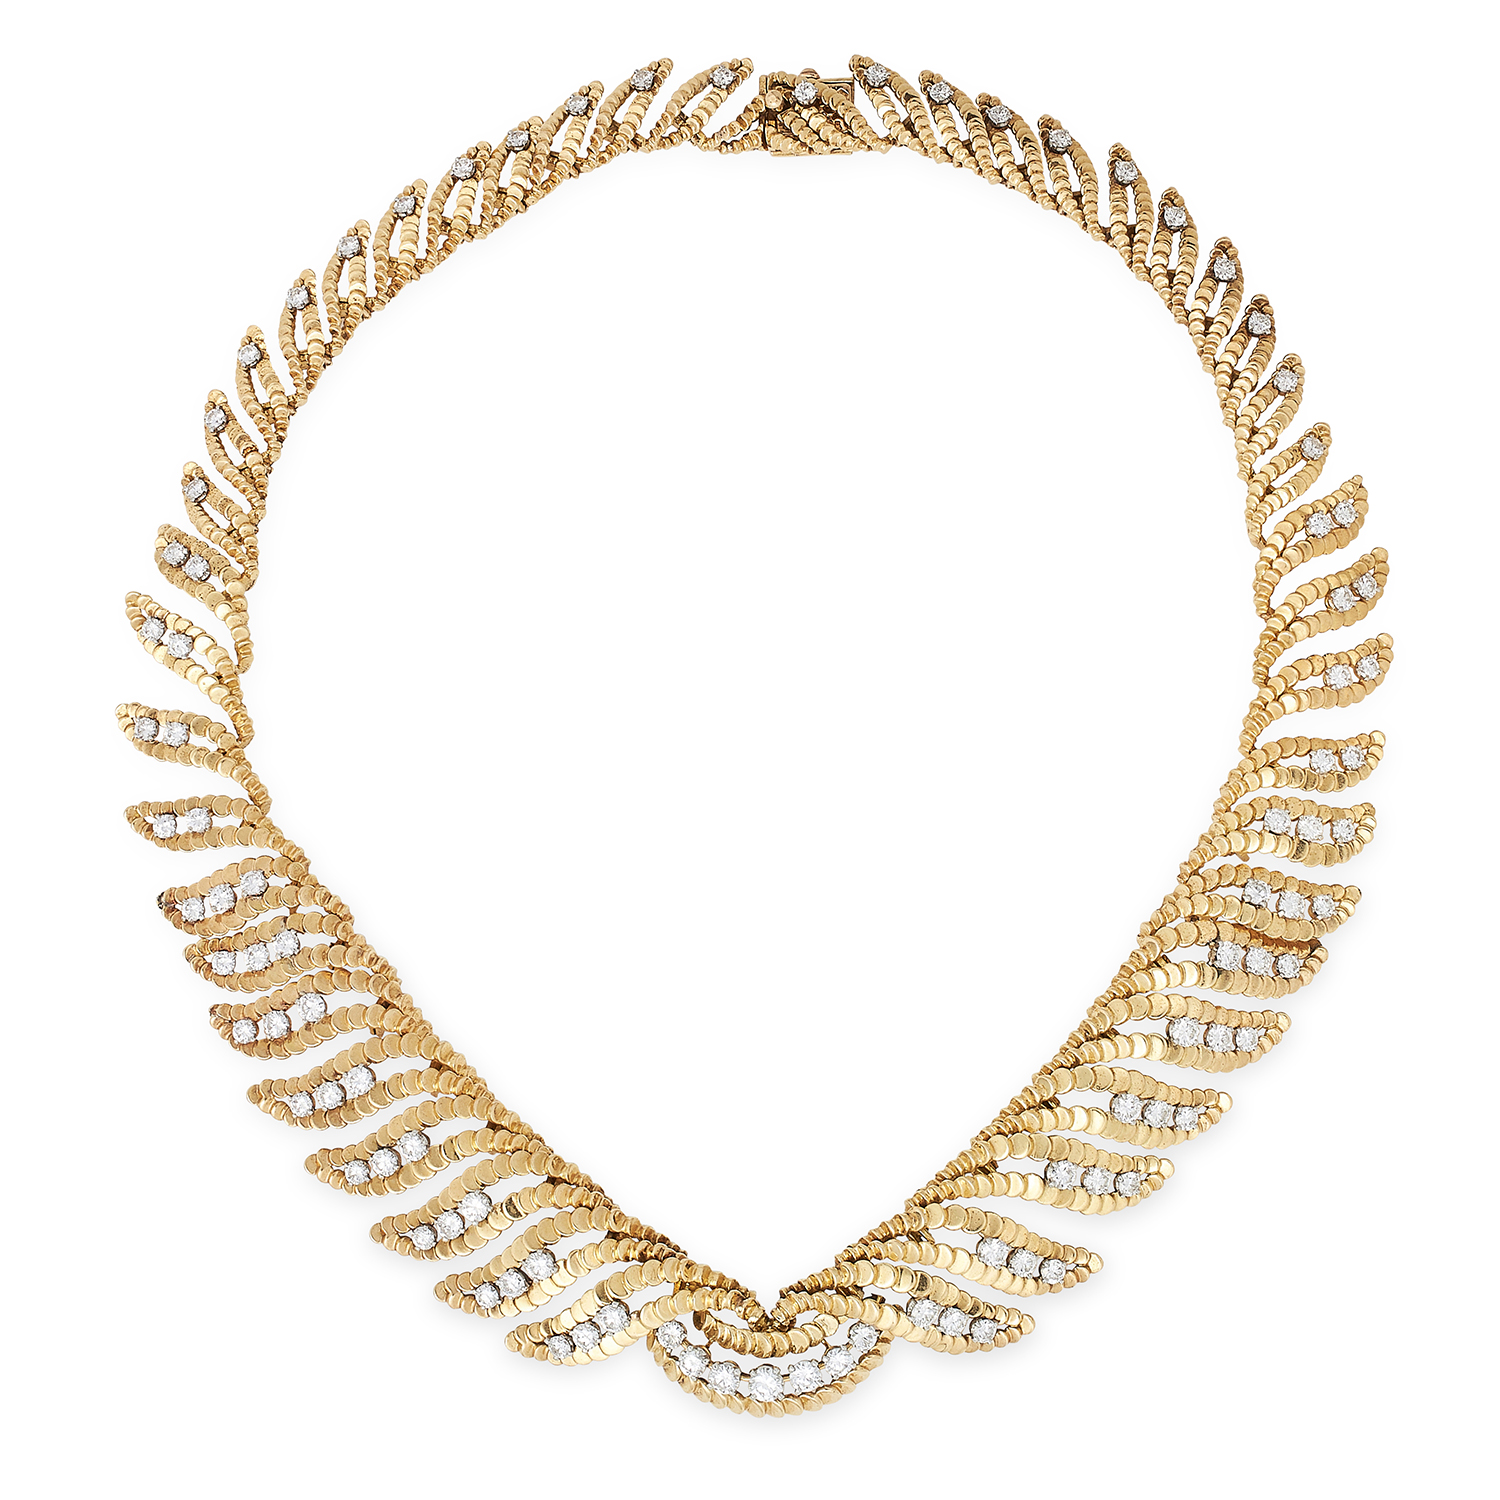 Los 55 - A VINTAGE DIAMOND NECKLACE, BOUCHERON formed of a collar of graduated foliate motifs jewelled with